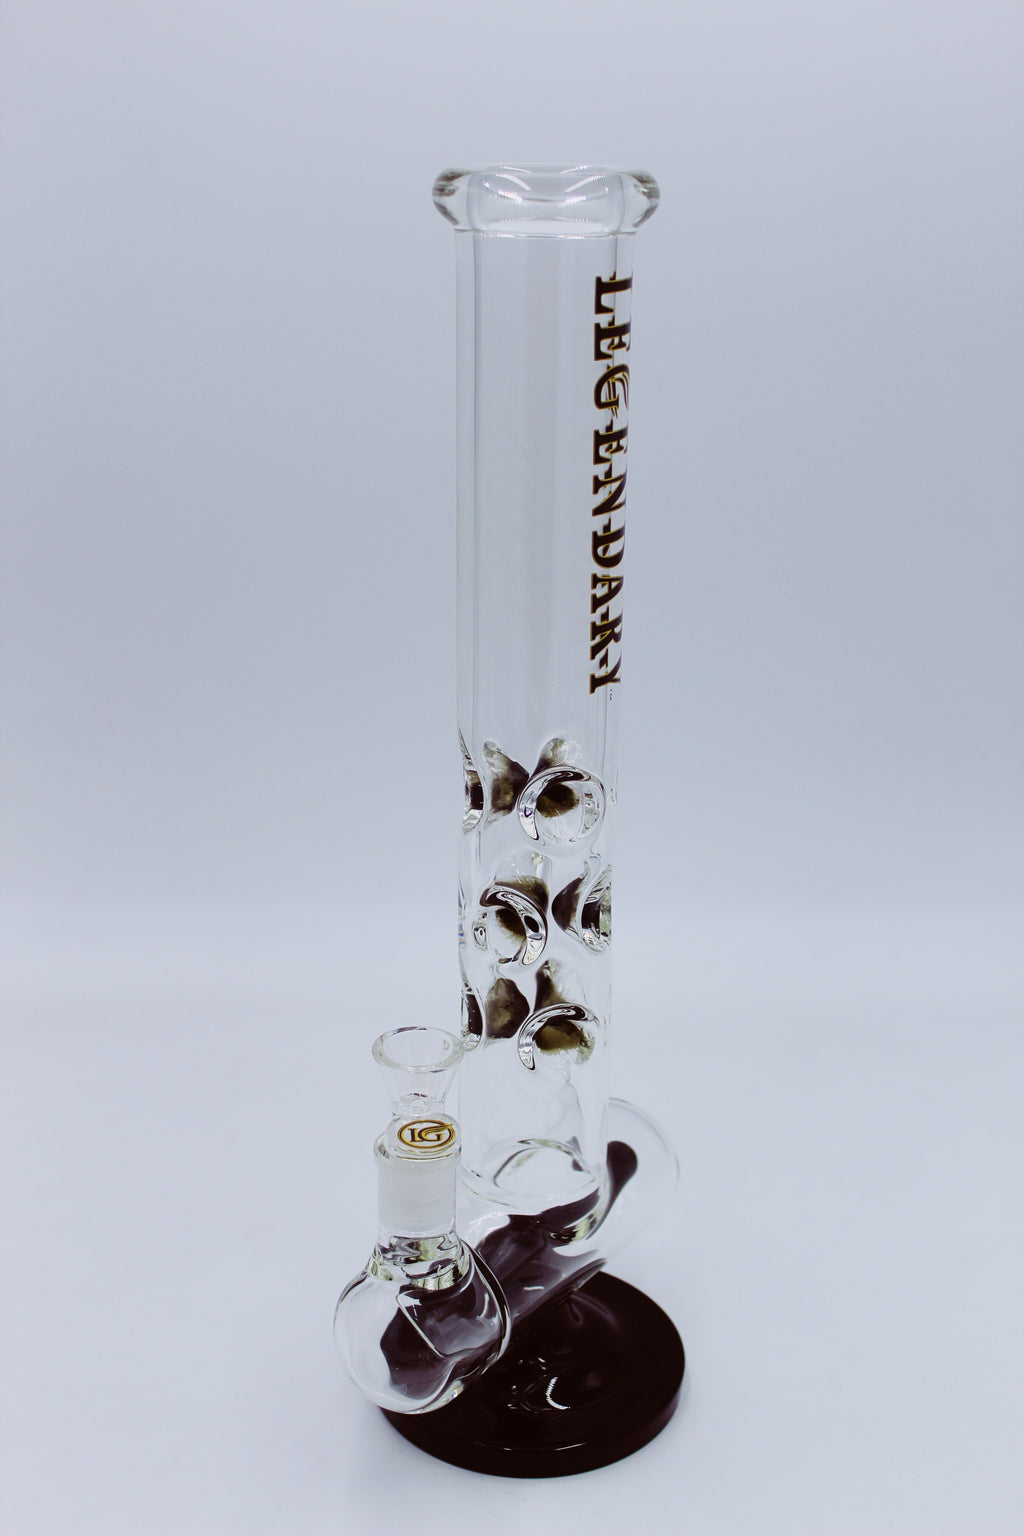 LEGENDARY GLASS BLACK INLINE PERCOLATOR - Smoke Country - Land of the artistic glass blown bongs